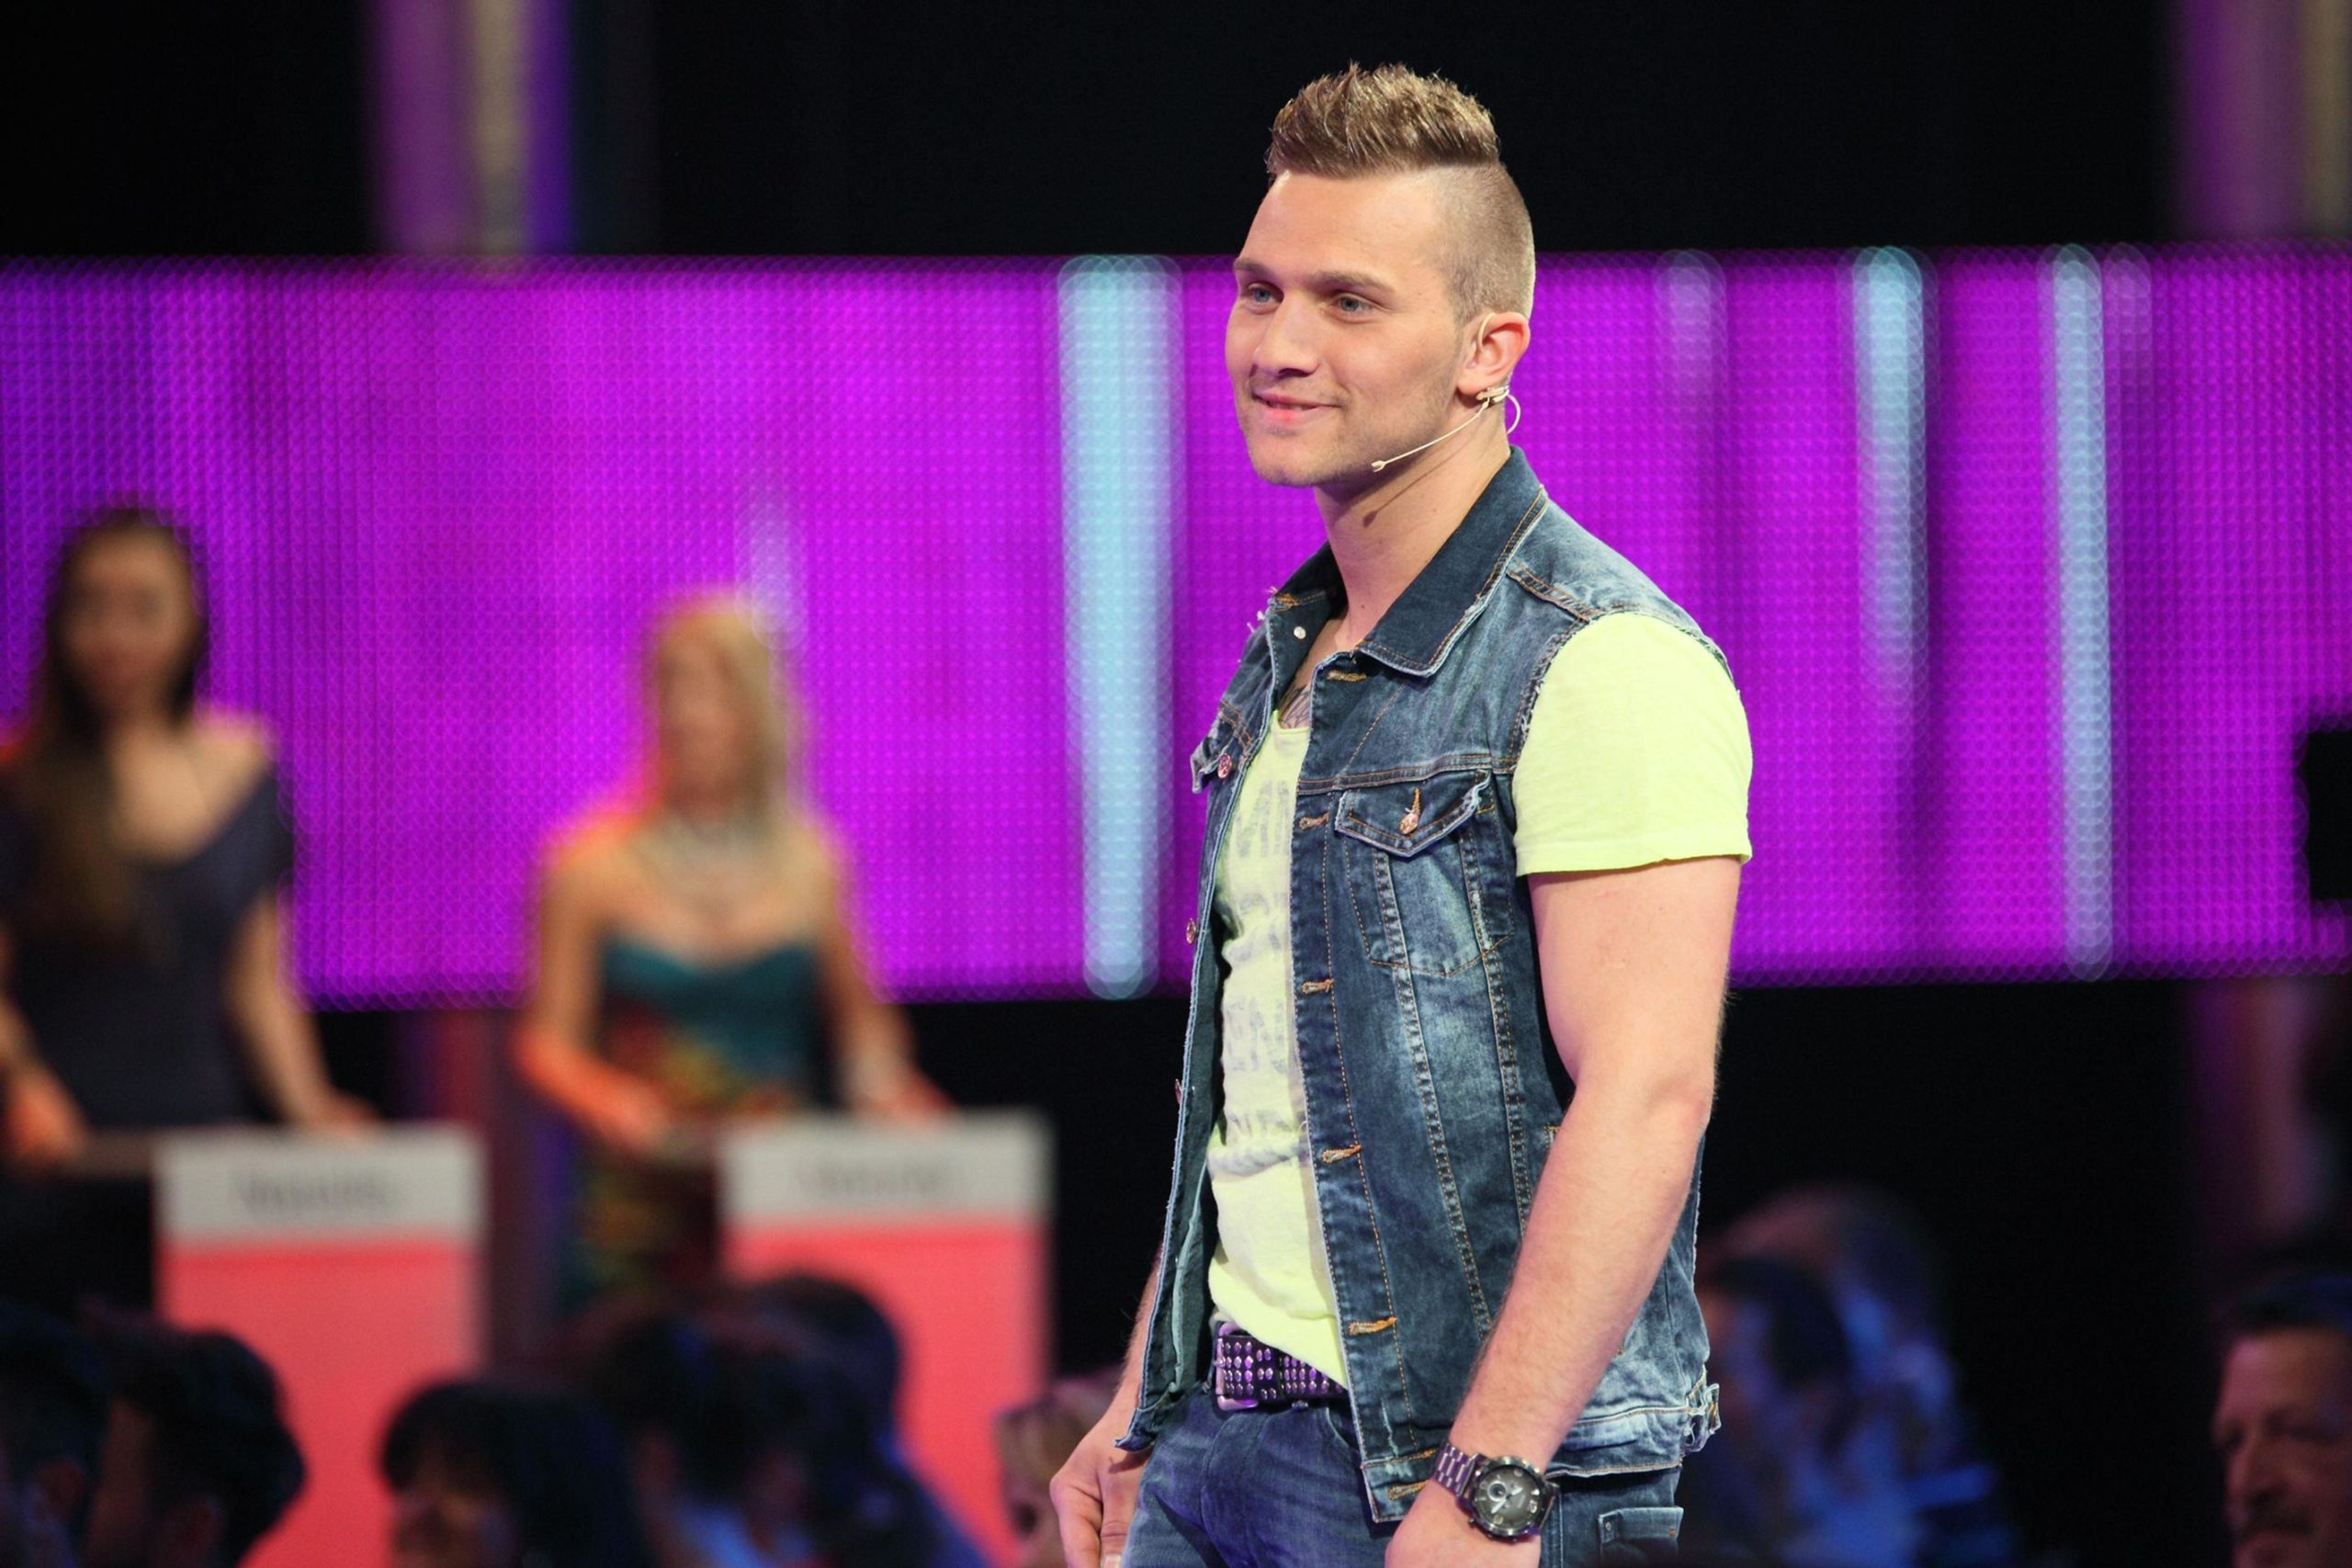 Take Me Out: Die Single-Männer am 08.03.2014 bei RTL